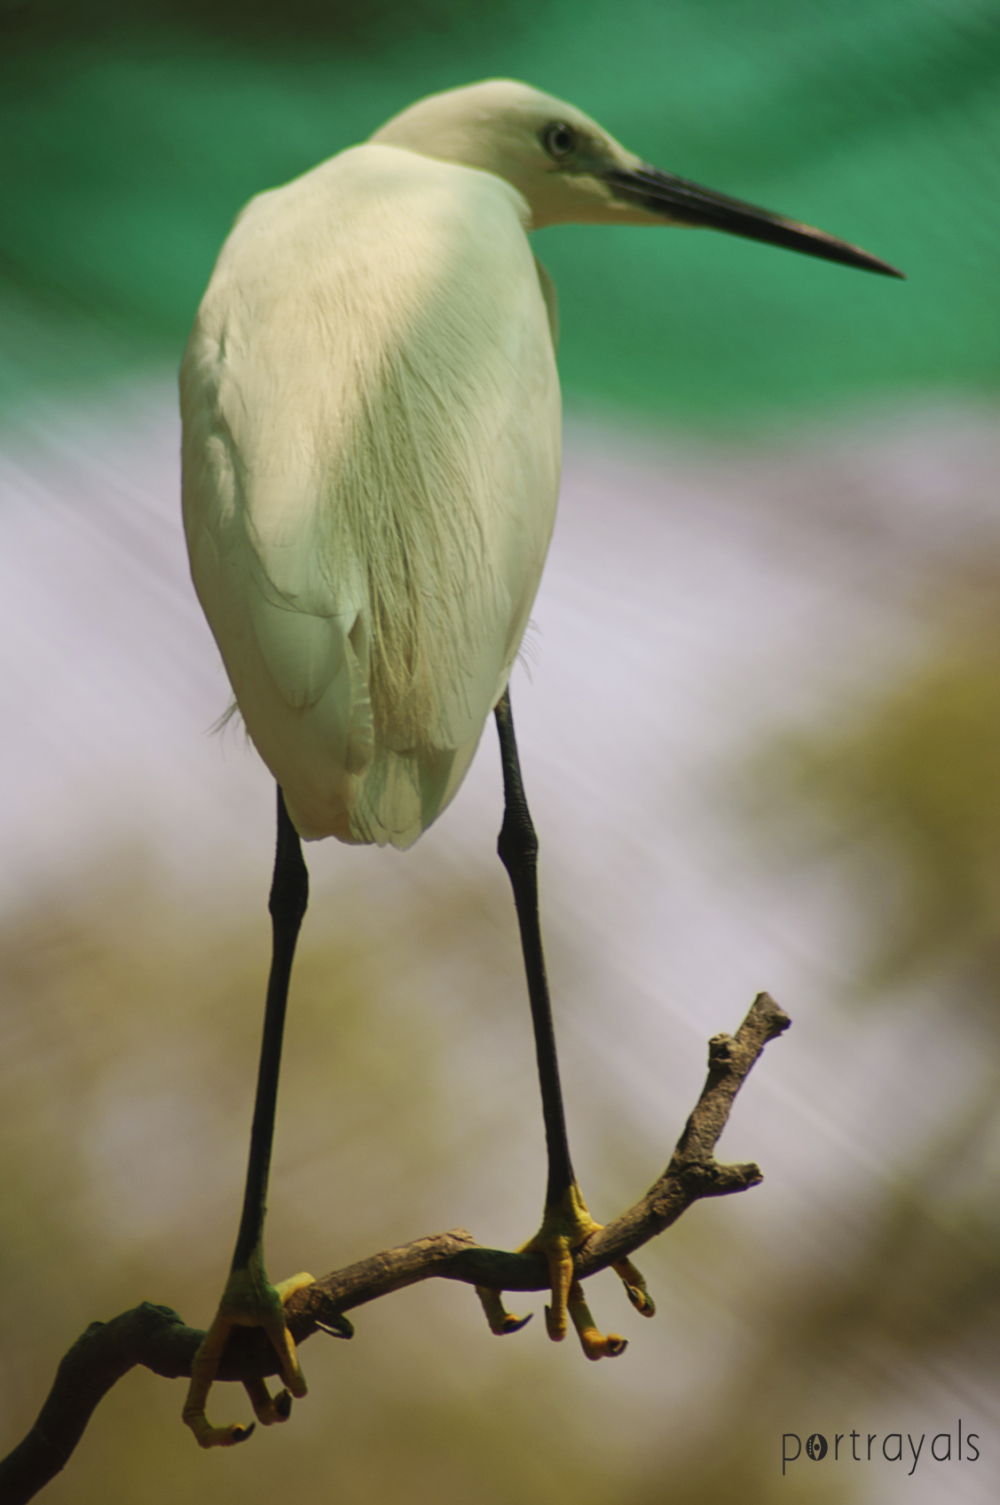 White bird at Vandalur Chennai India